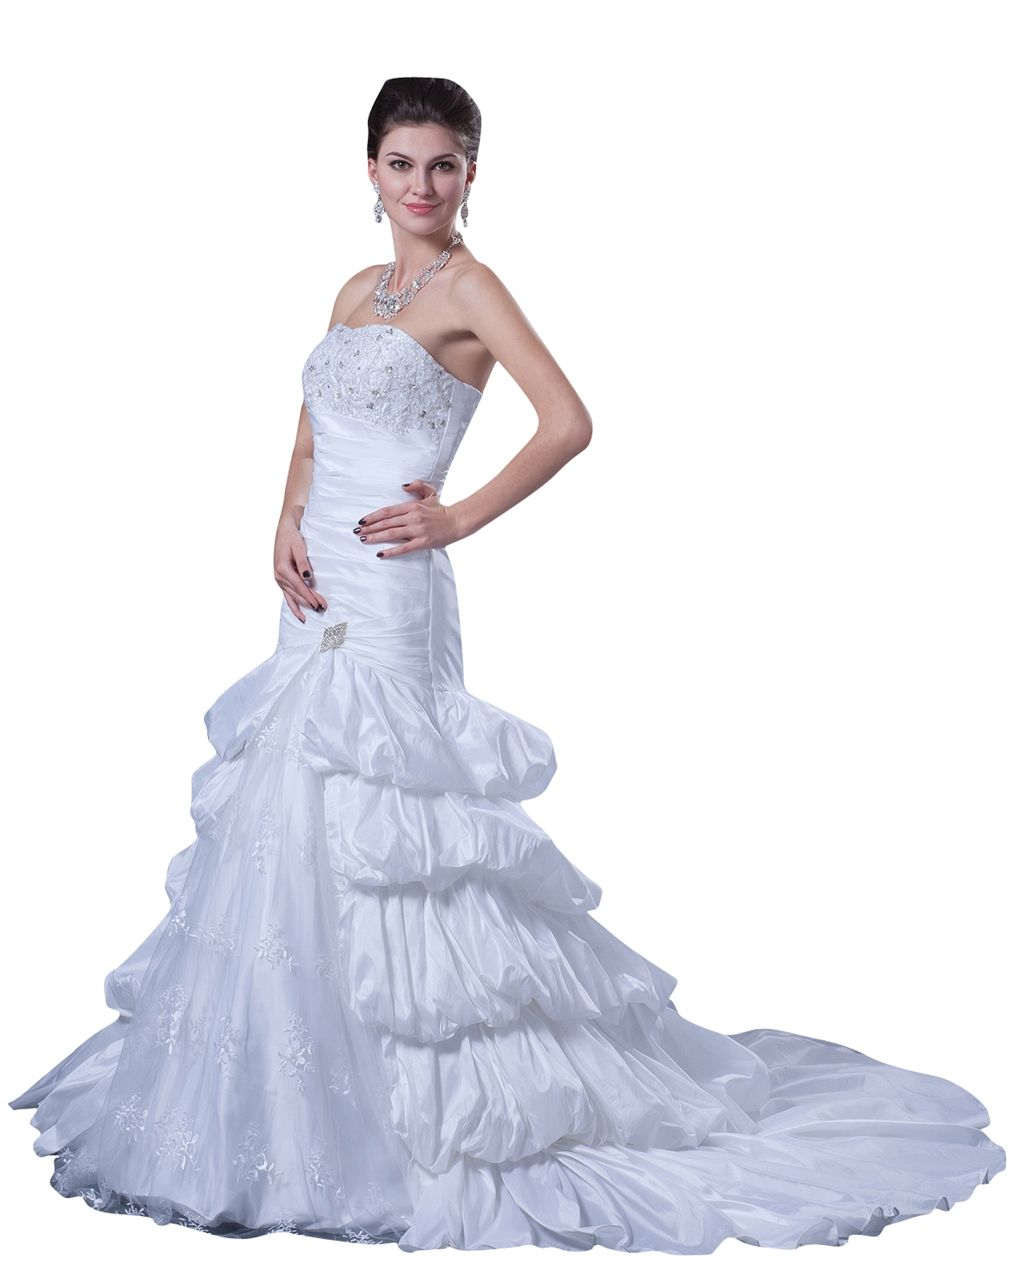 3ef14473df37 lindadress.com Offers High Quality White Taffeta Layered Skirt Strapless  Mermaid Wedding Gown With Beading,Priced At Only USD USD $220.00 (Free  Shipping)